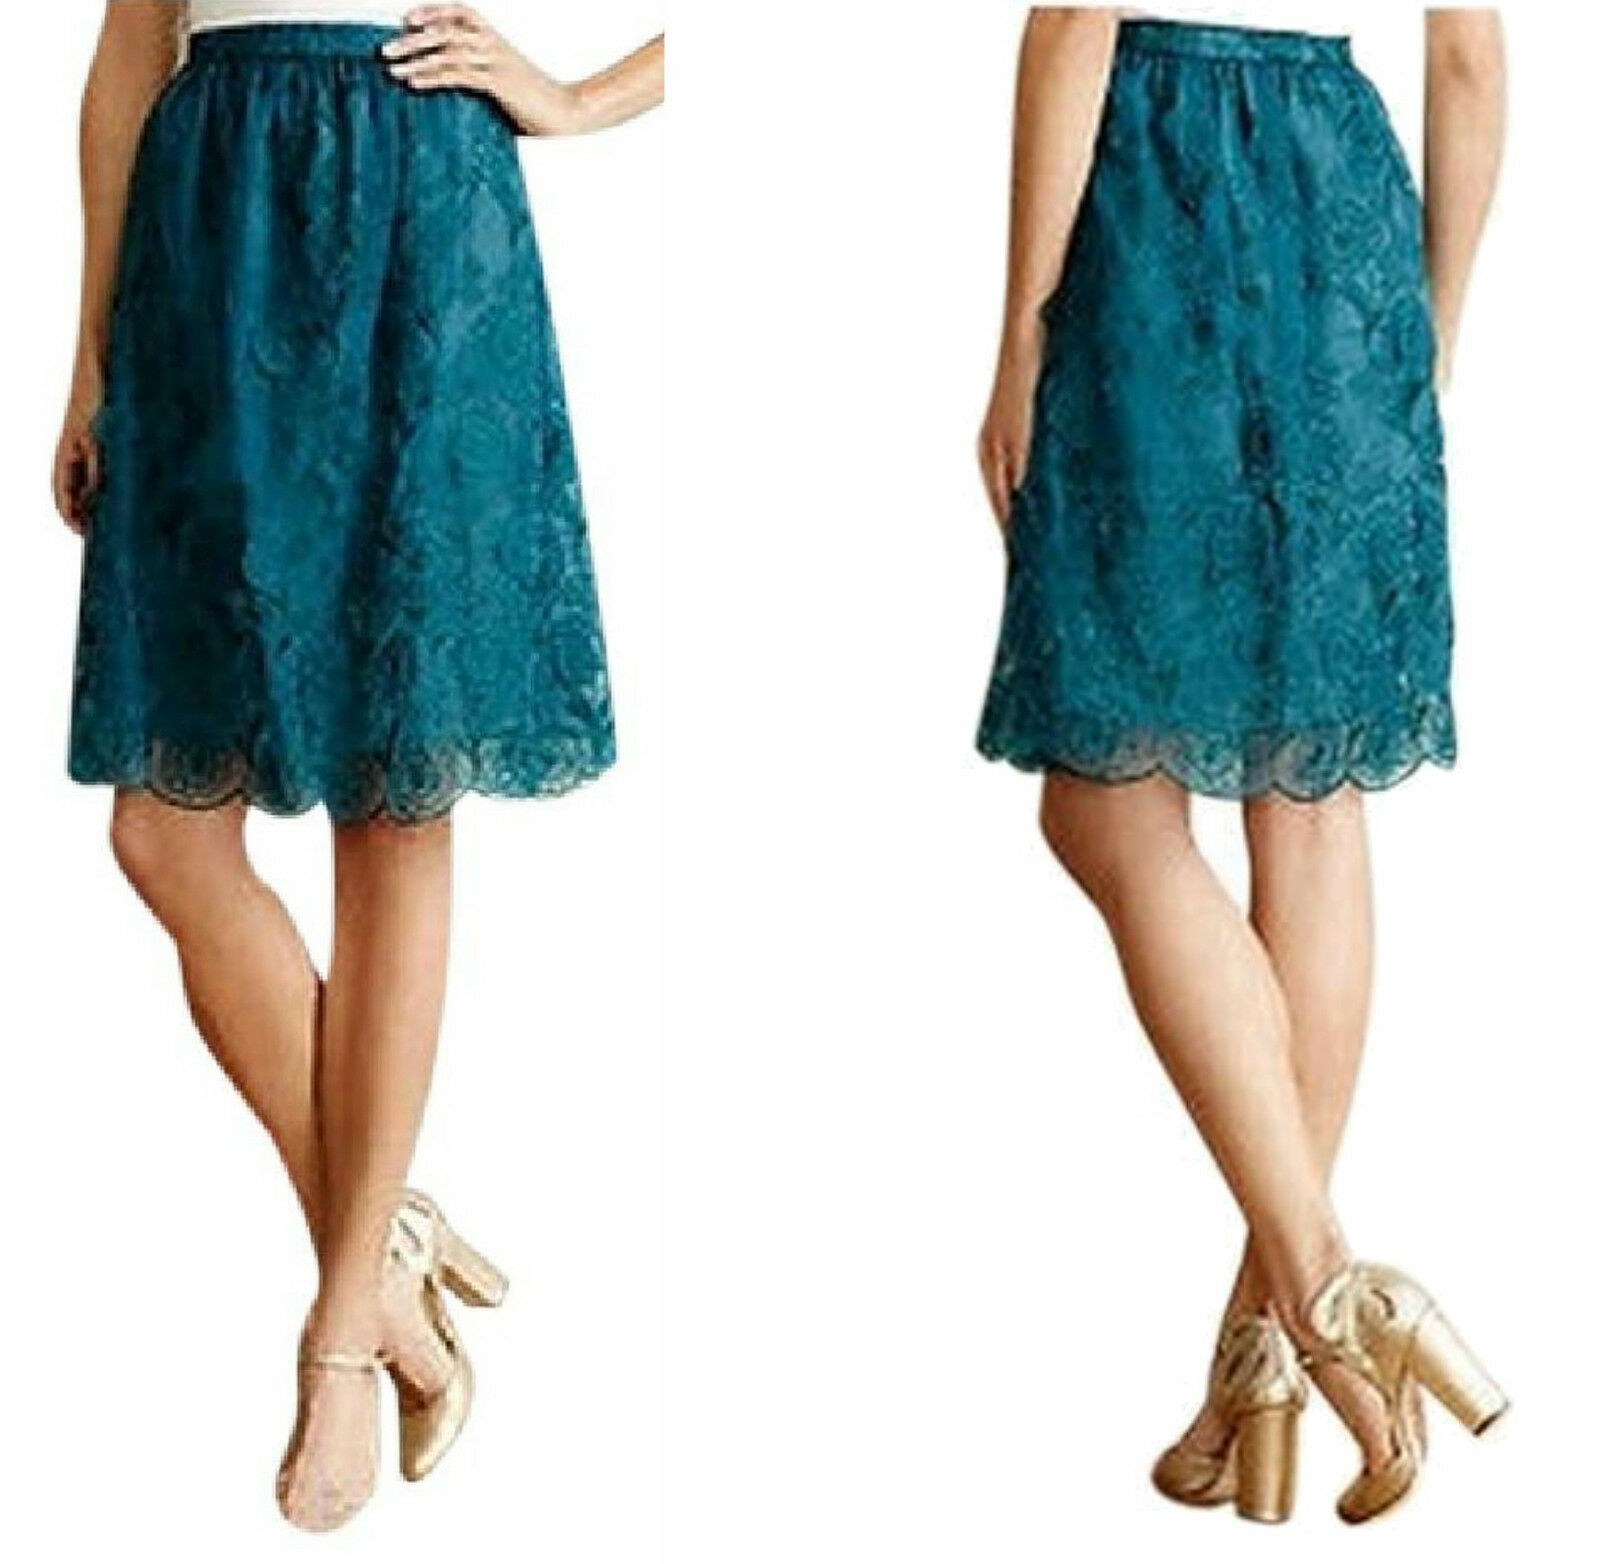 Anthropologie Blossomed Aubrie Skirt 10 Large Turquoise Raised Floral Appliques